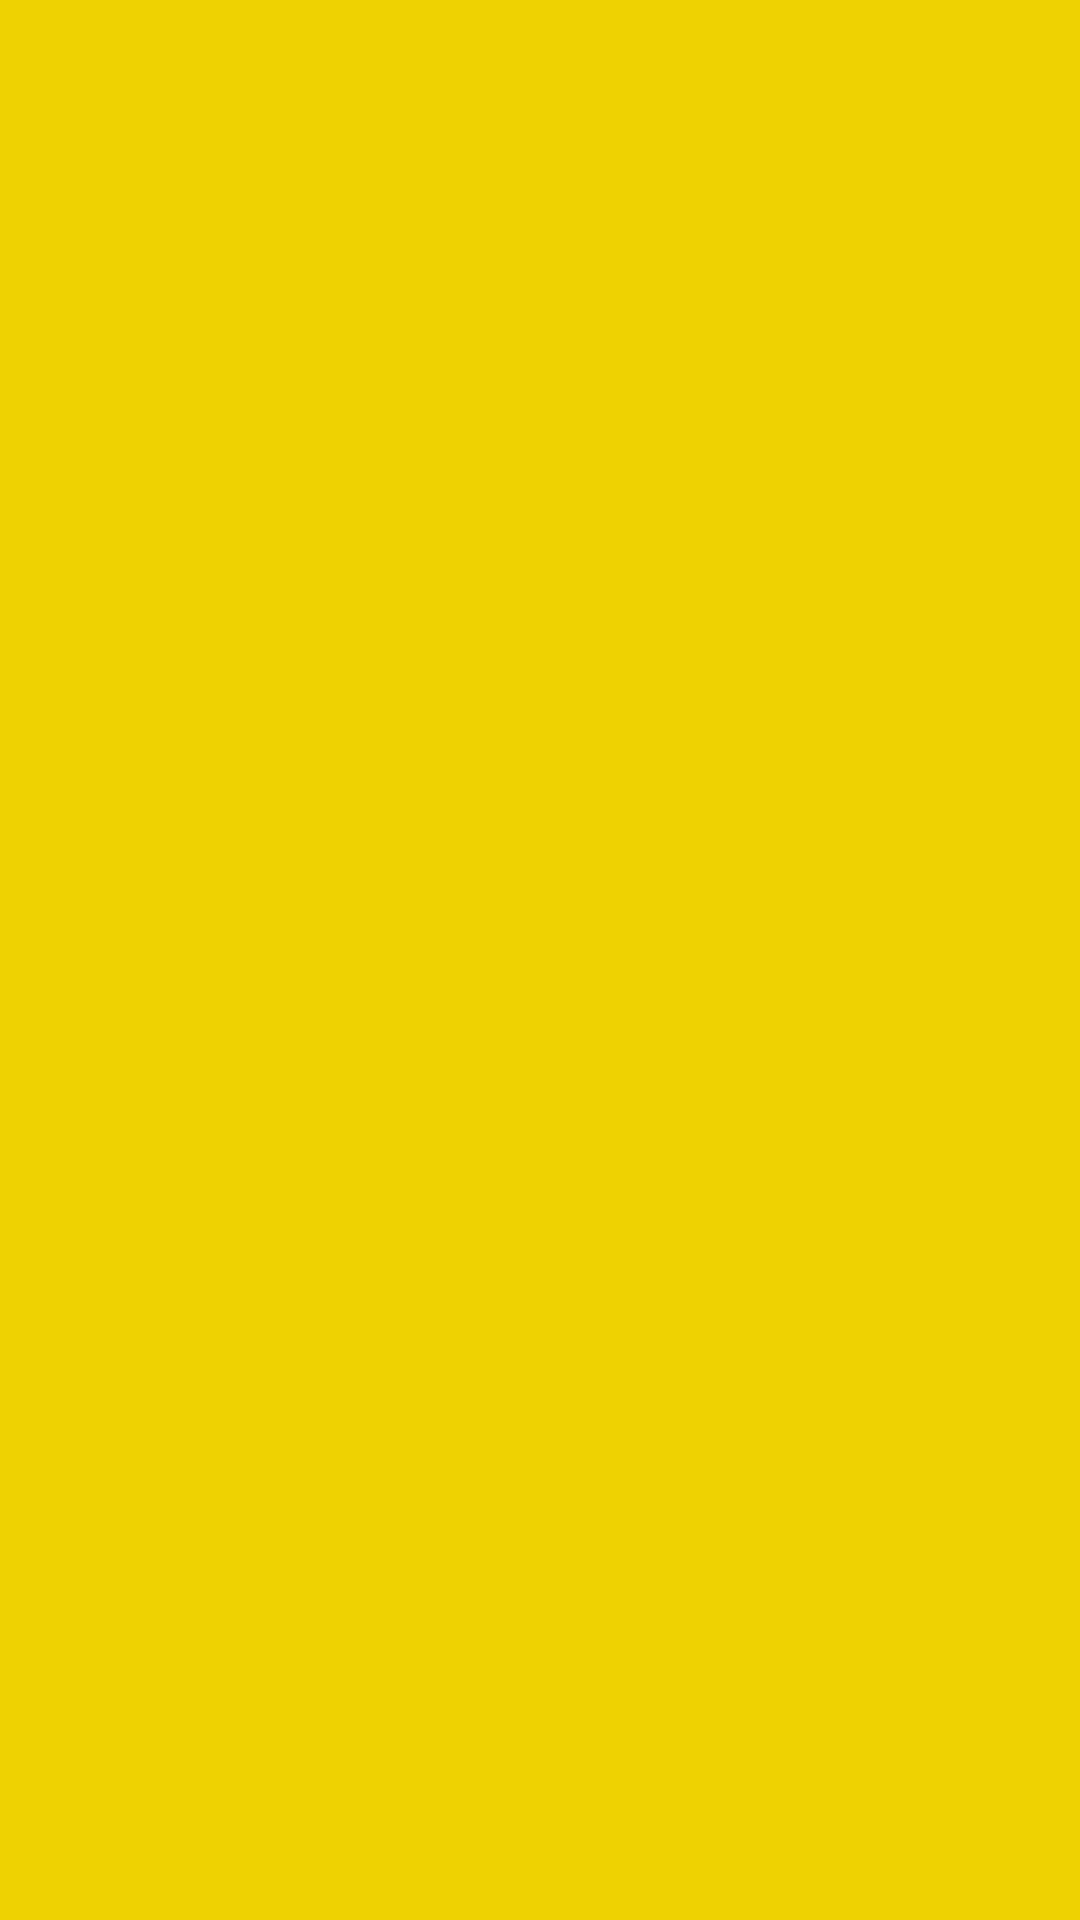 1080x1920 Safety Yellow Solid Color Background